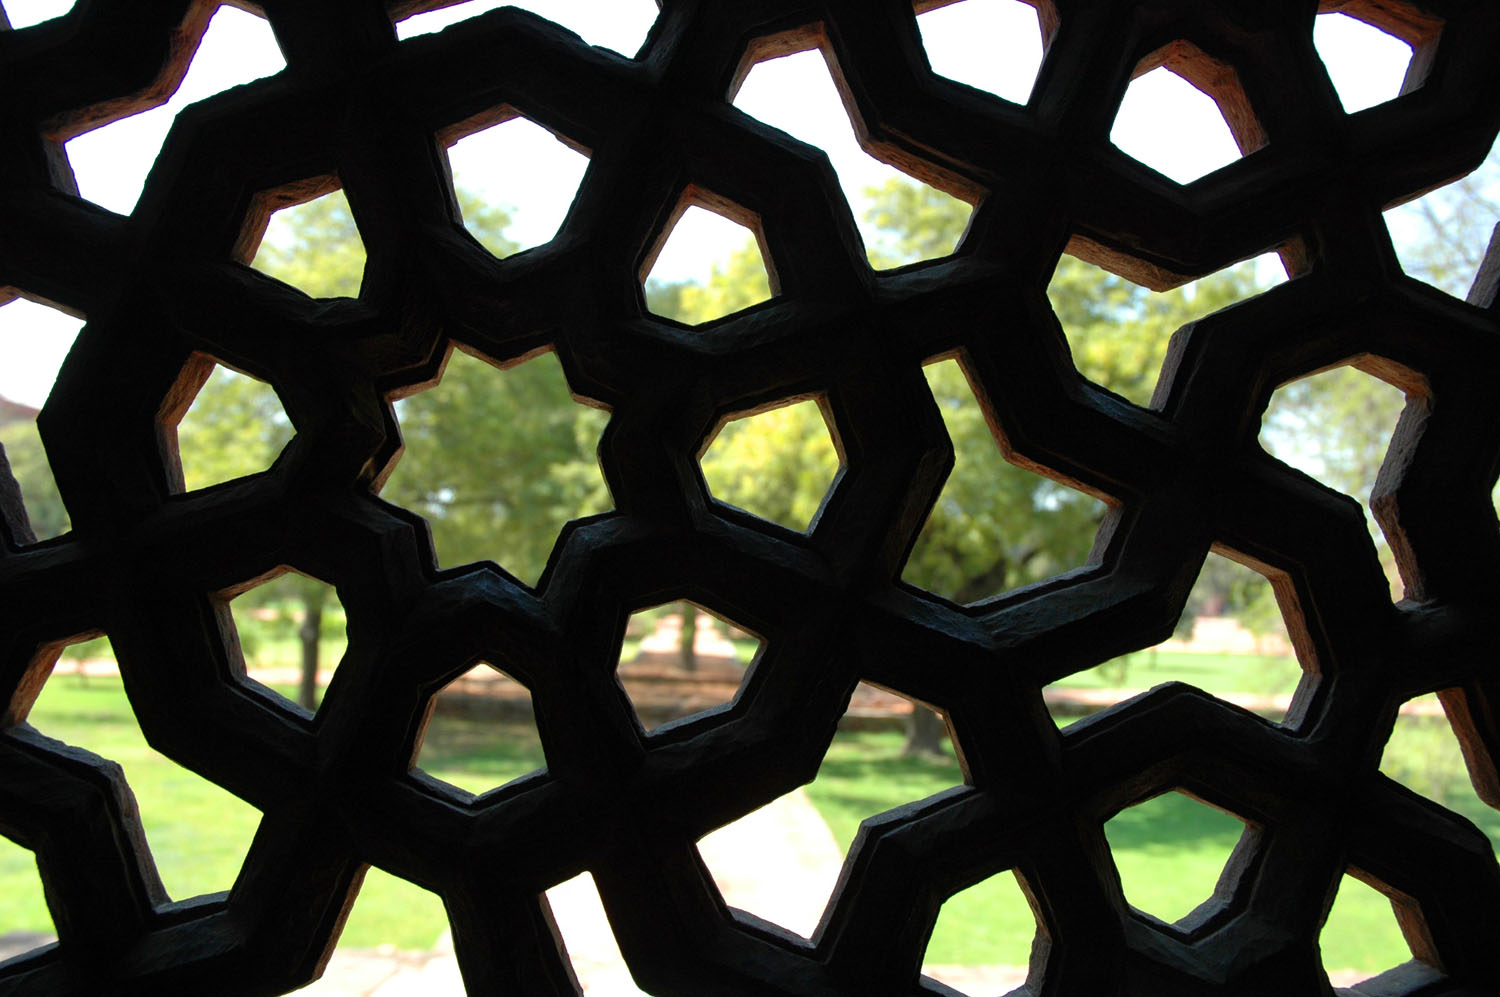 Looking through jaali into the charbagh in the Humayun's Tomb complex, New Delhi, 16 March, 2007, photograph by Gordon Brent Ingram